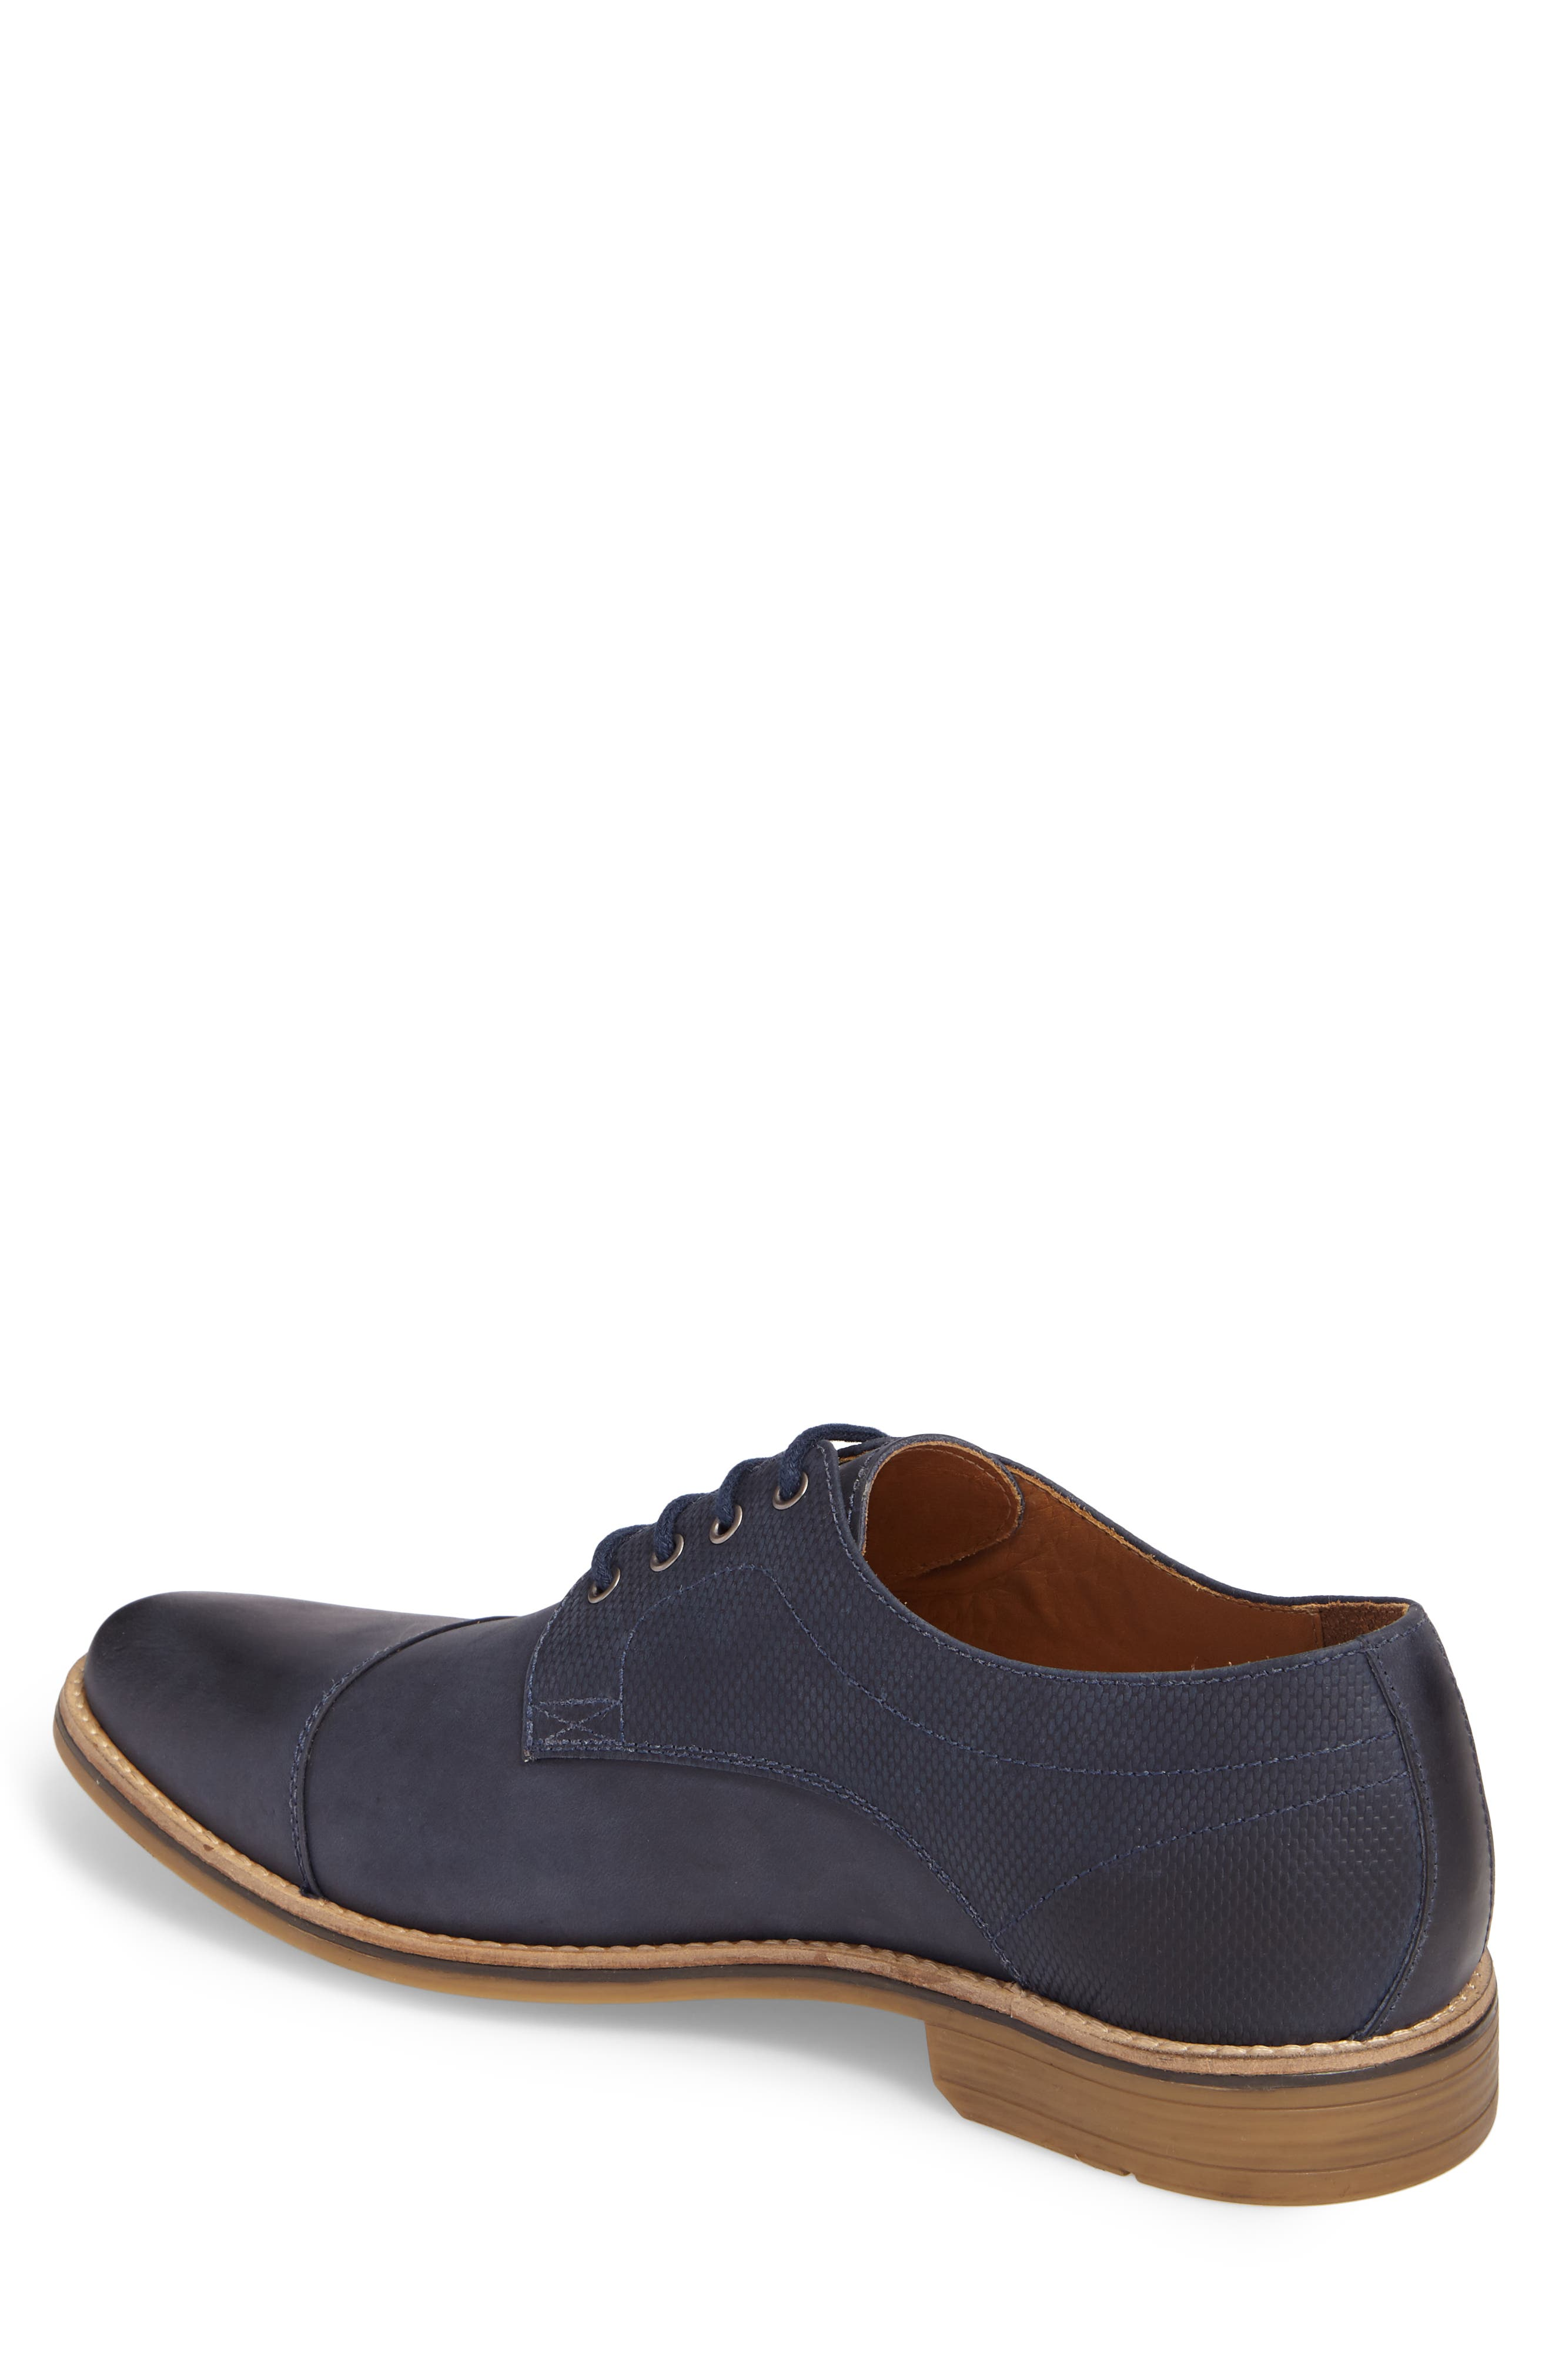 Goleta Cap Toe Derby,                             Alternate thumbnail 2, color,                             Navy Leather